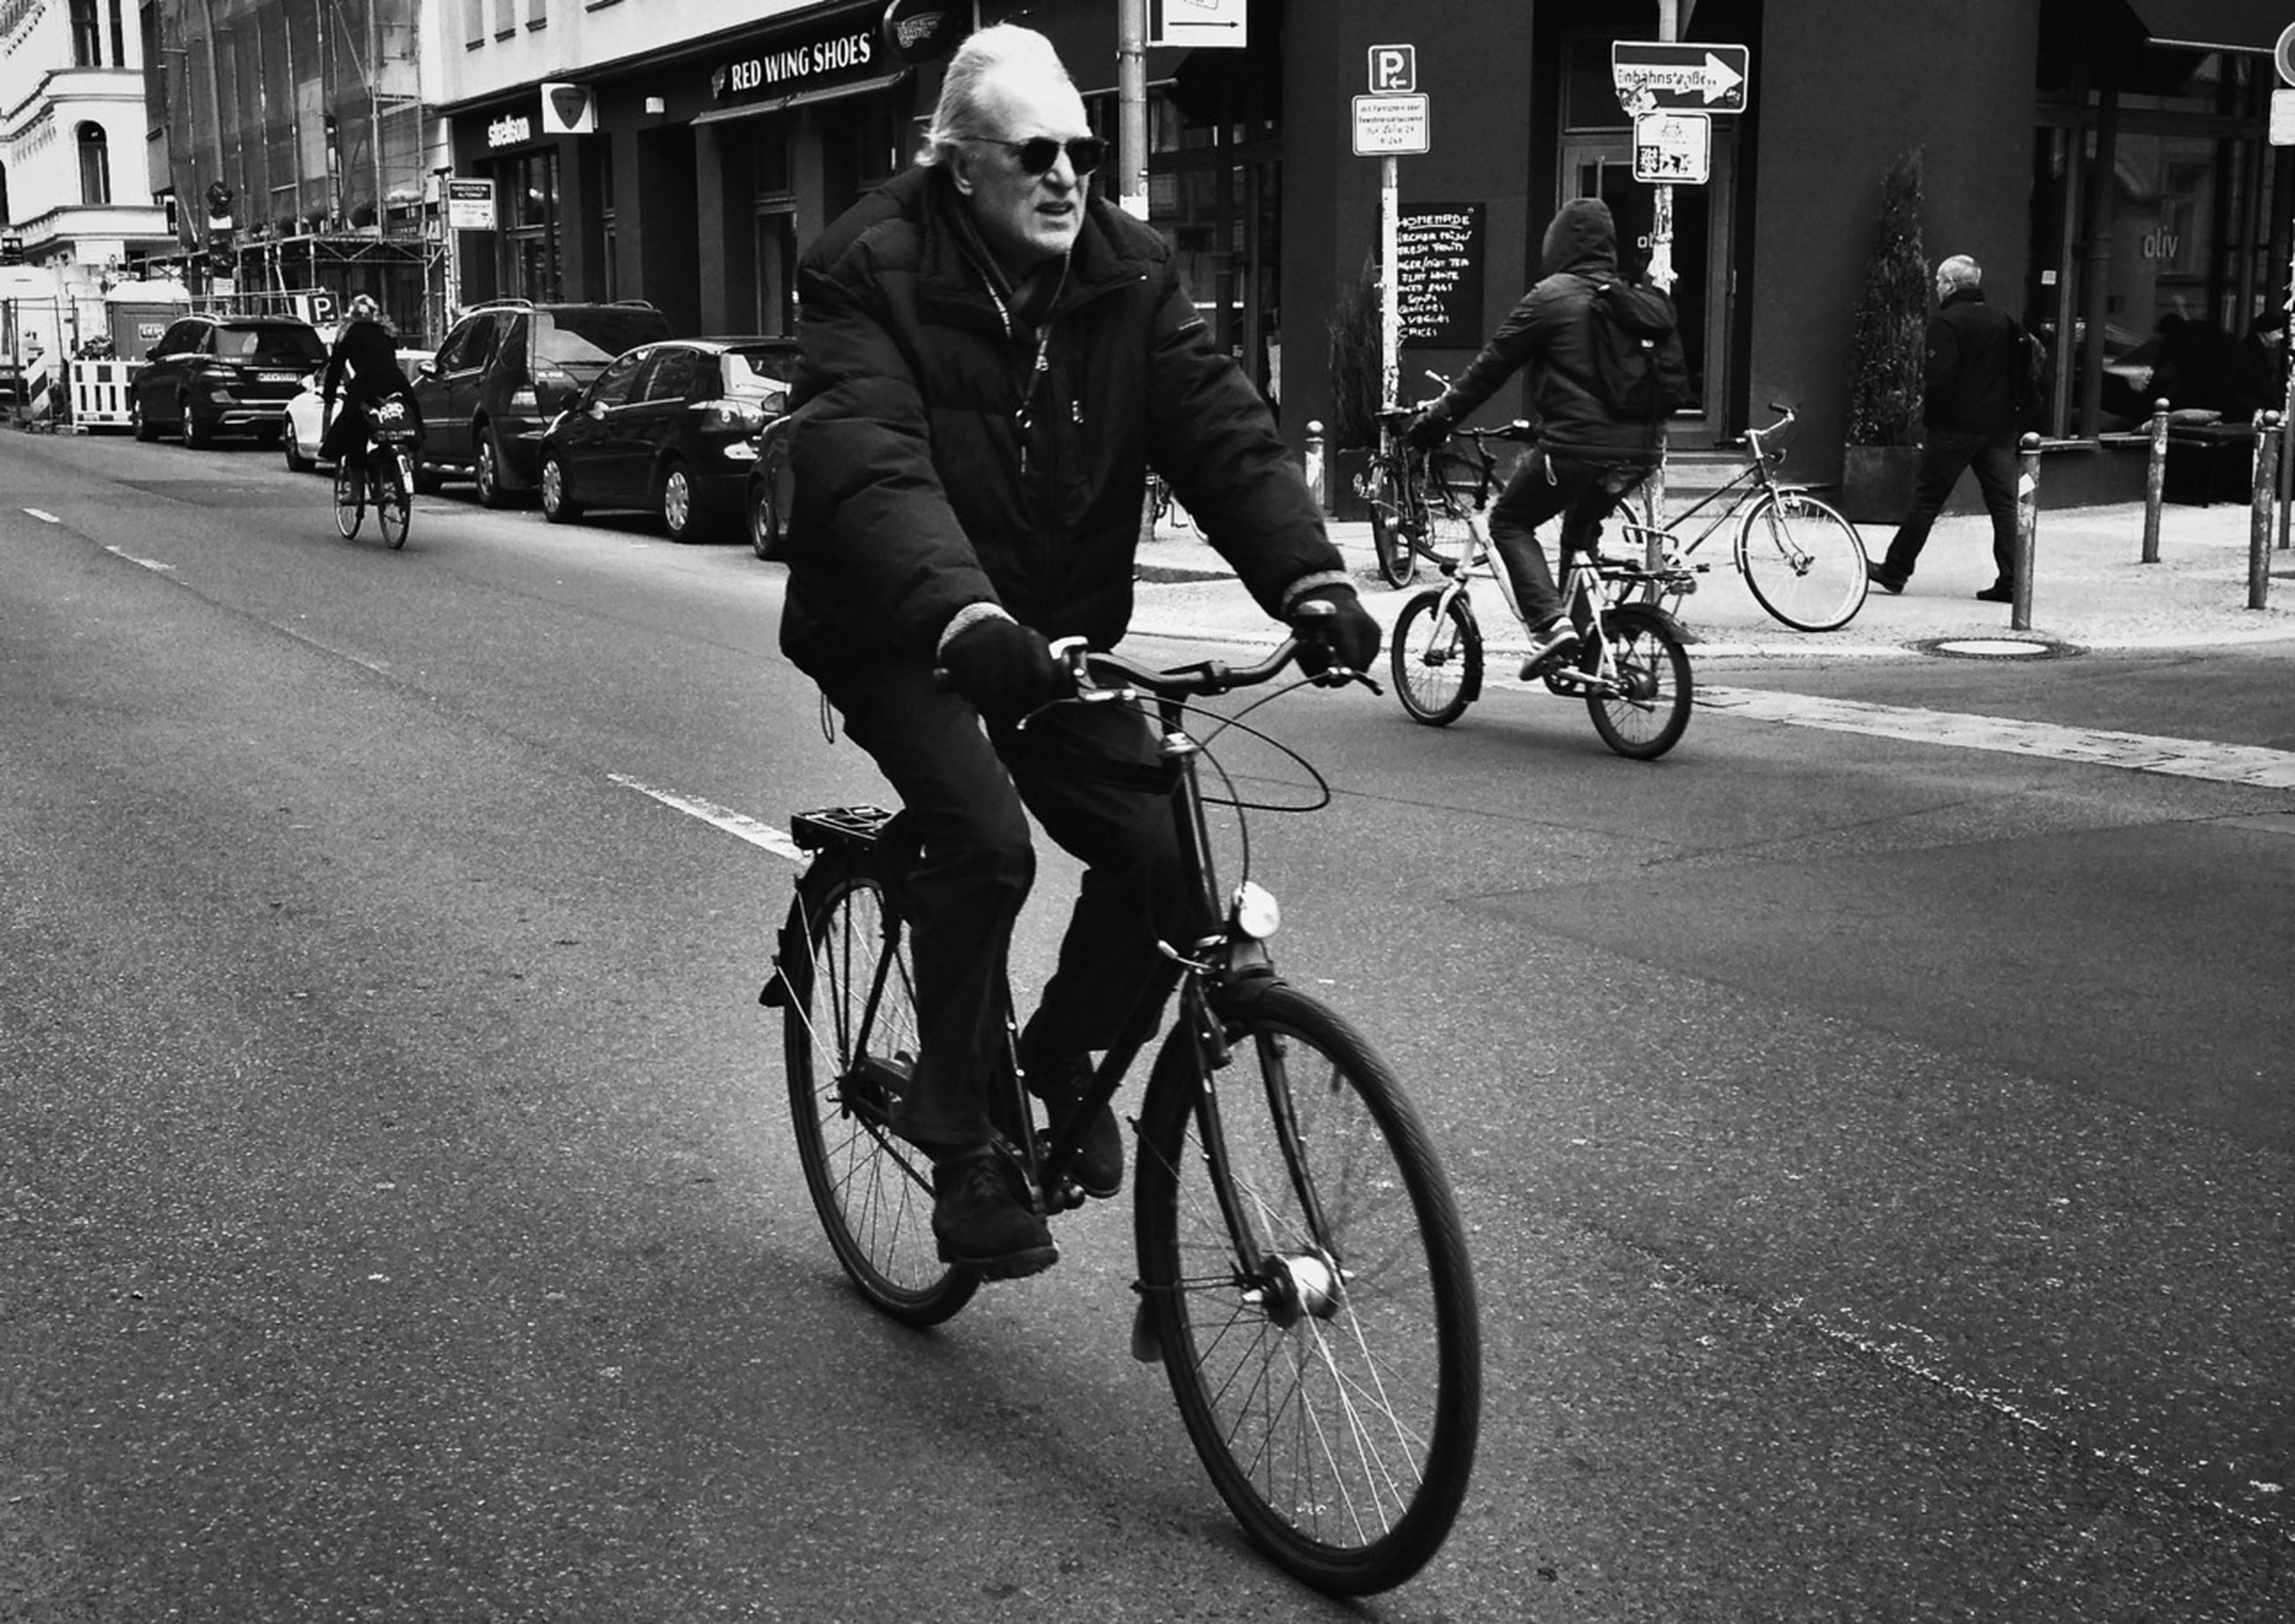 bicycle, transportation, mode of transport, land vehicle, riding, street, cycling, lifestyles, men, city, city life, on the move, road, building exterior, leisure activity, motorcycle, stationary, full length